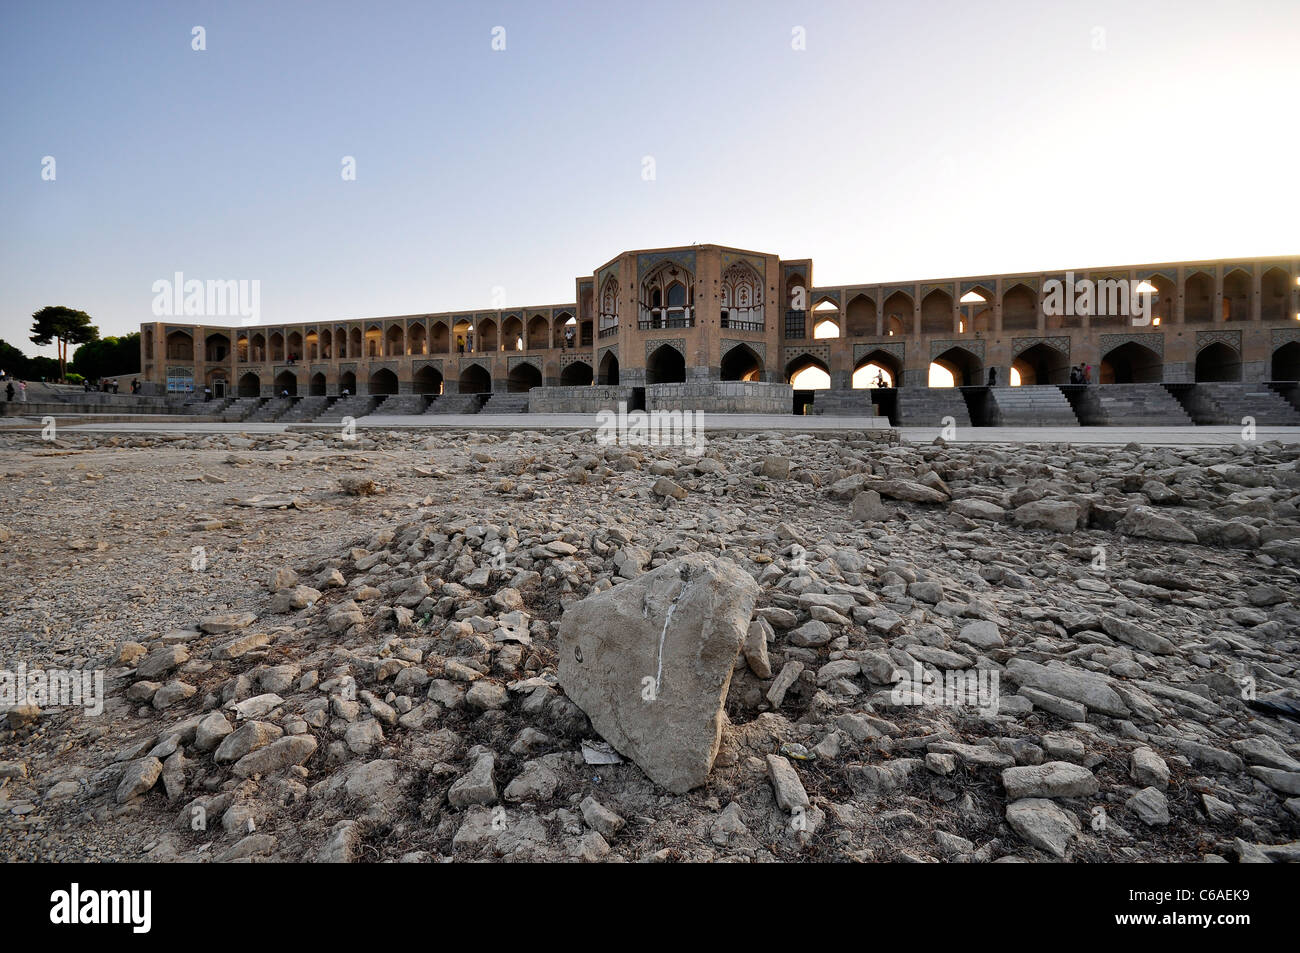 Dried riverbed of Zayandeh river with Khaju Bridge in background, Isfahan Iran. - Stock Image